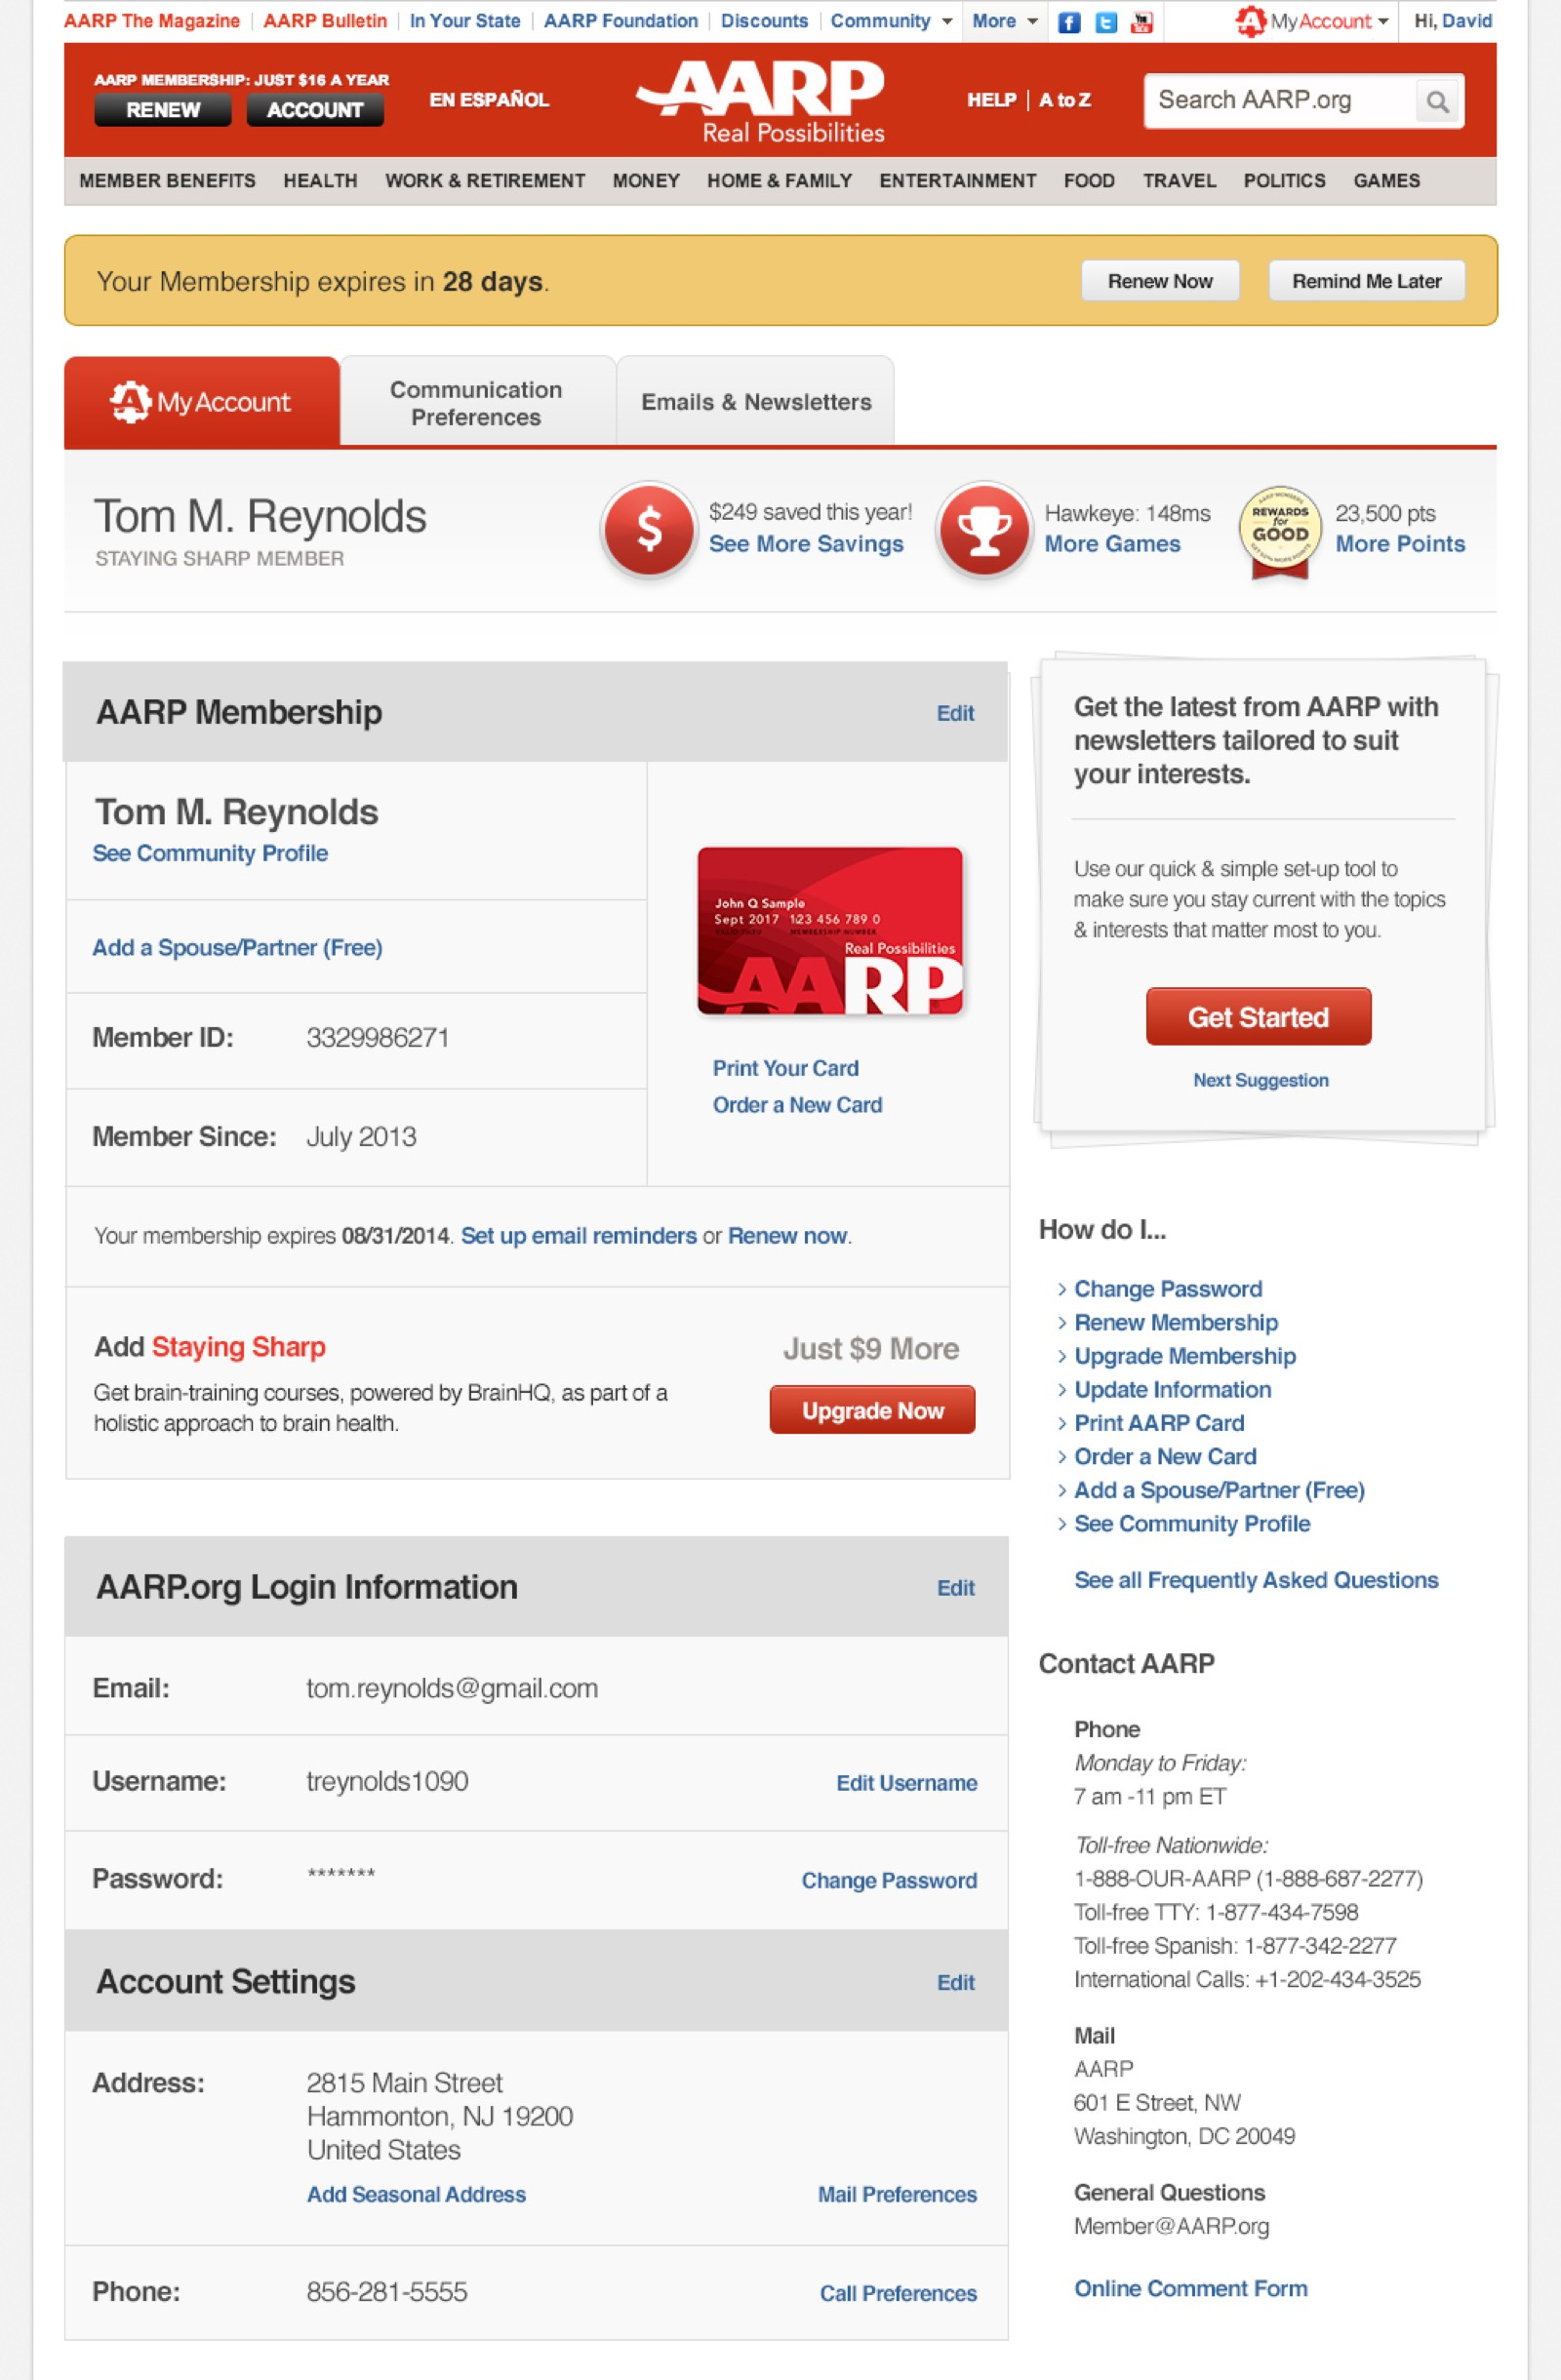 aarp-am-after-design